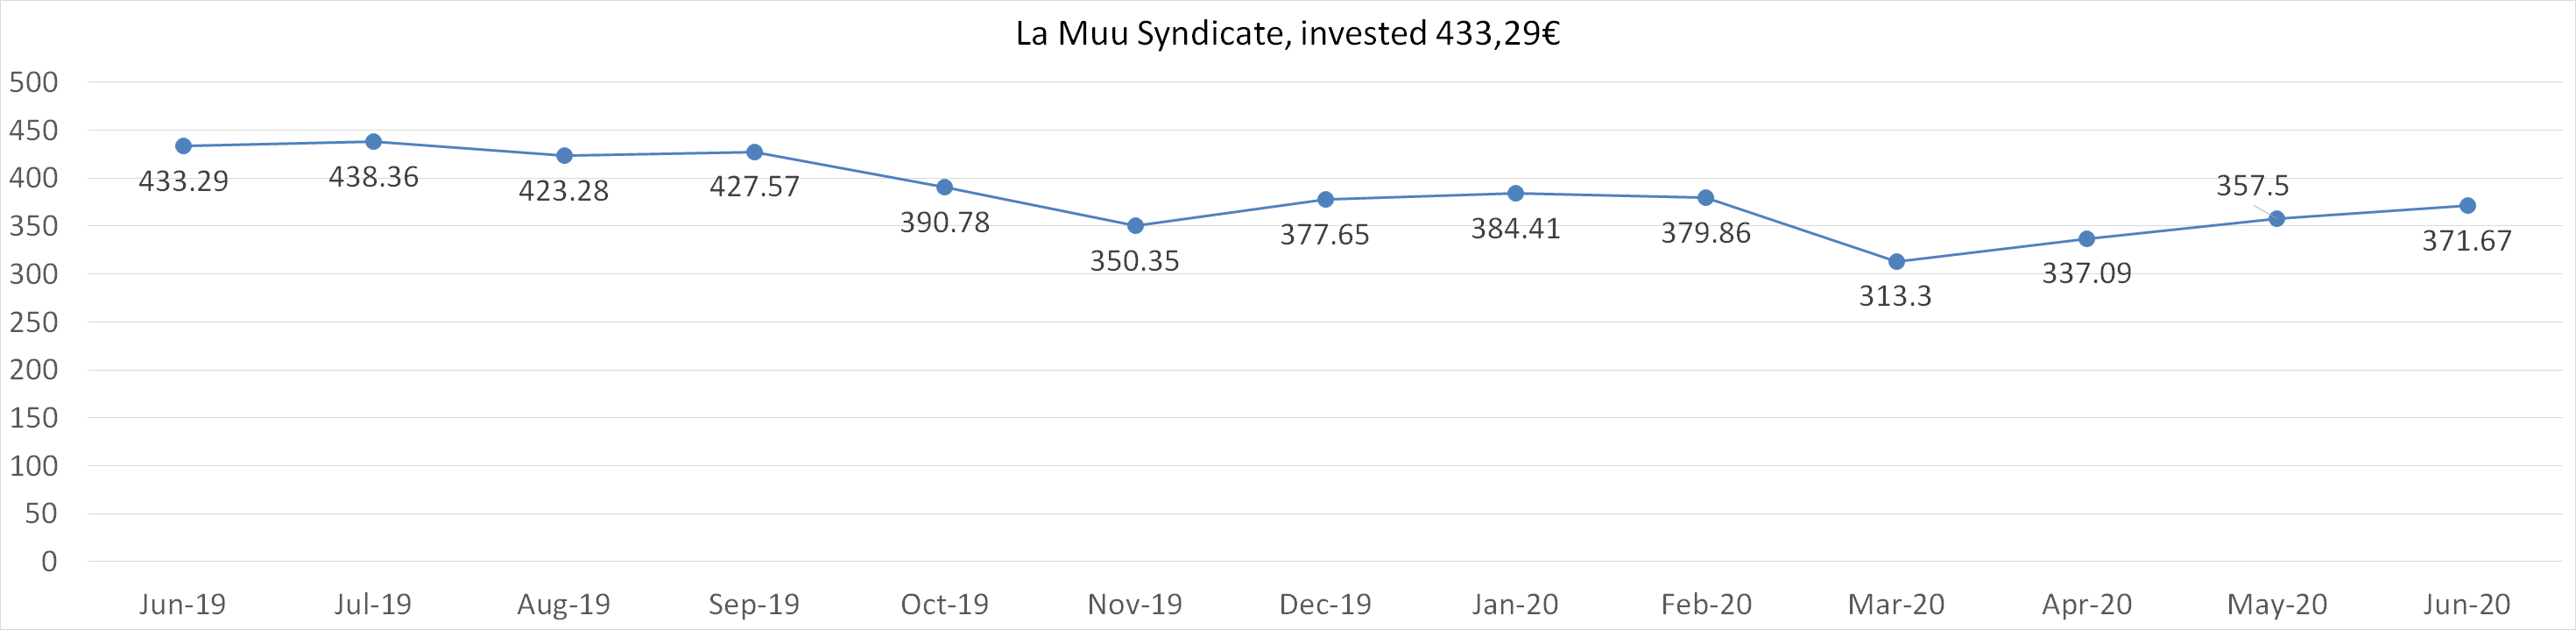 La Muu Syndicate worth june 2020